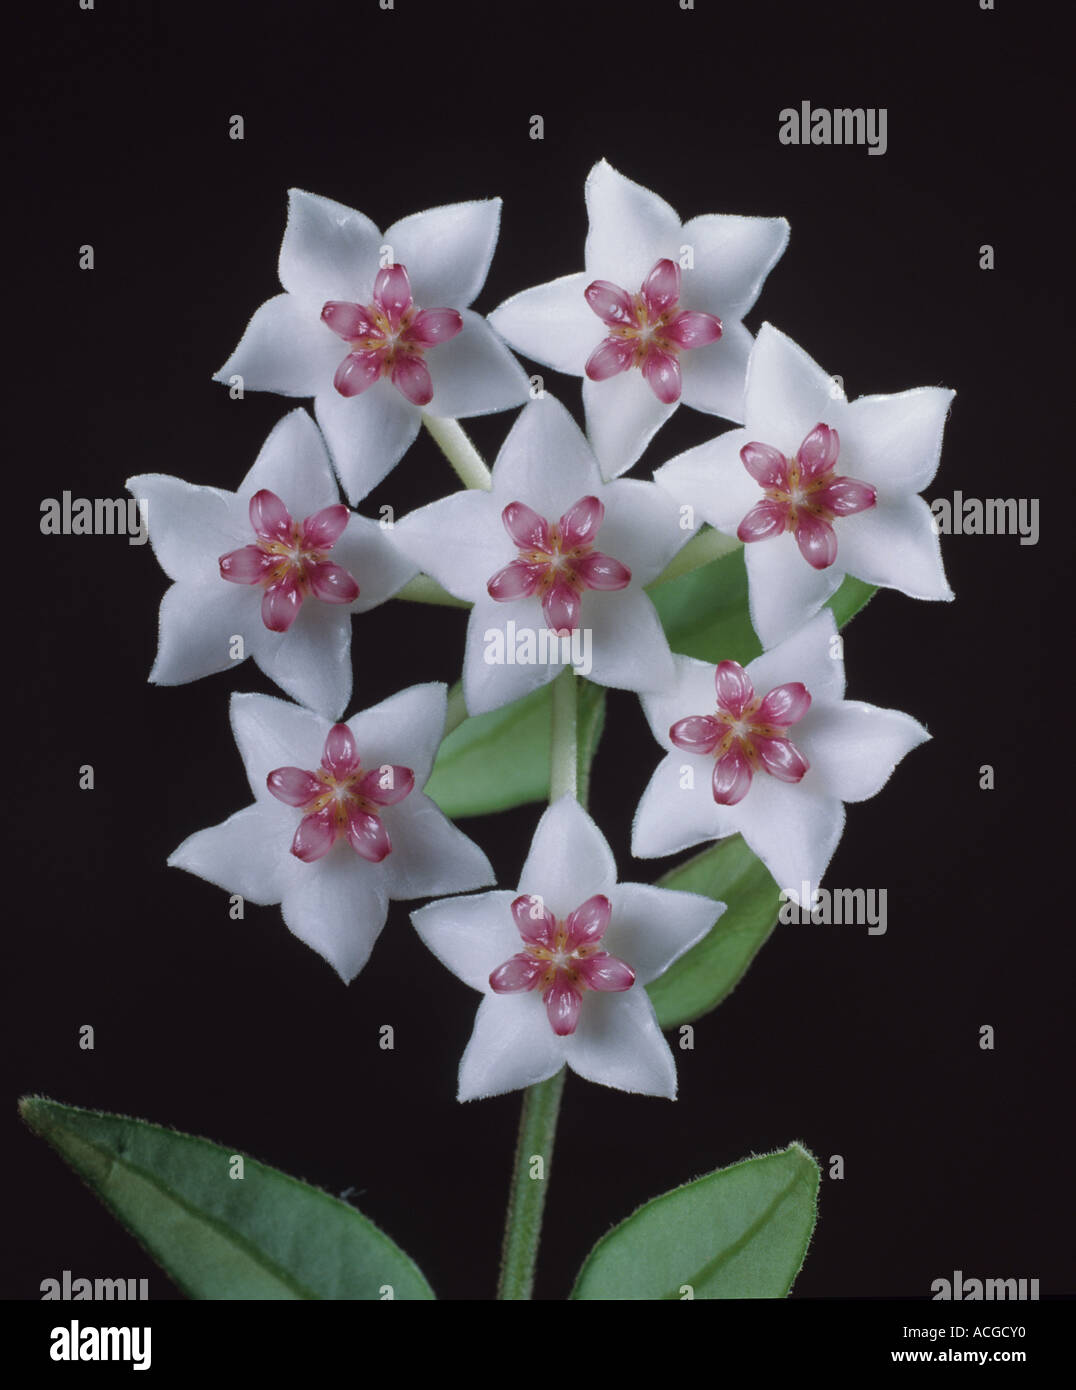 Flowers of a wax plant Hoya bella - Stock Image